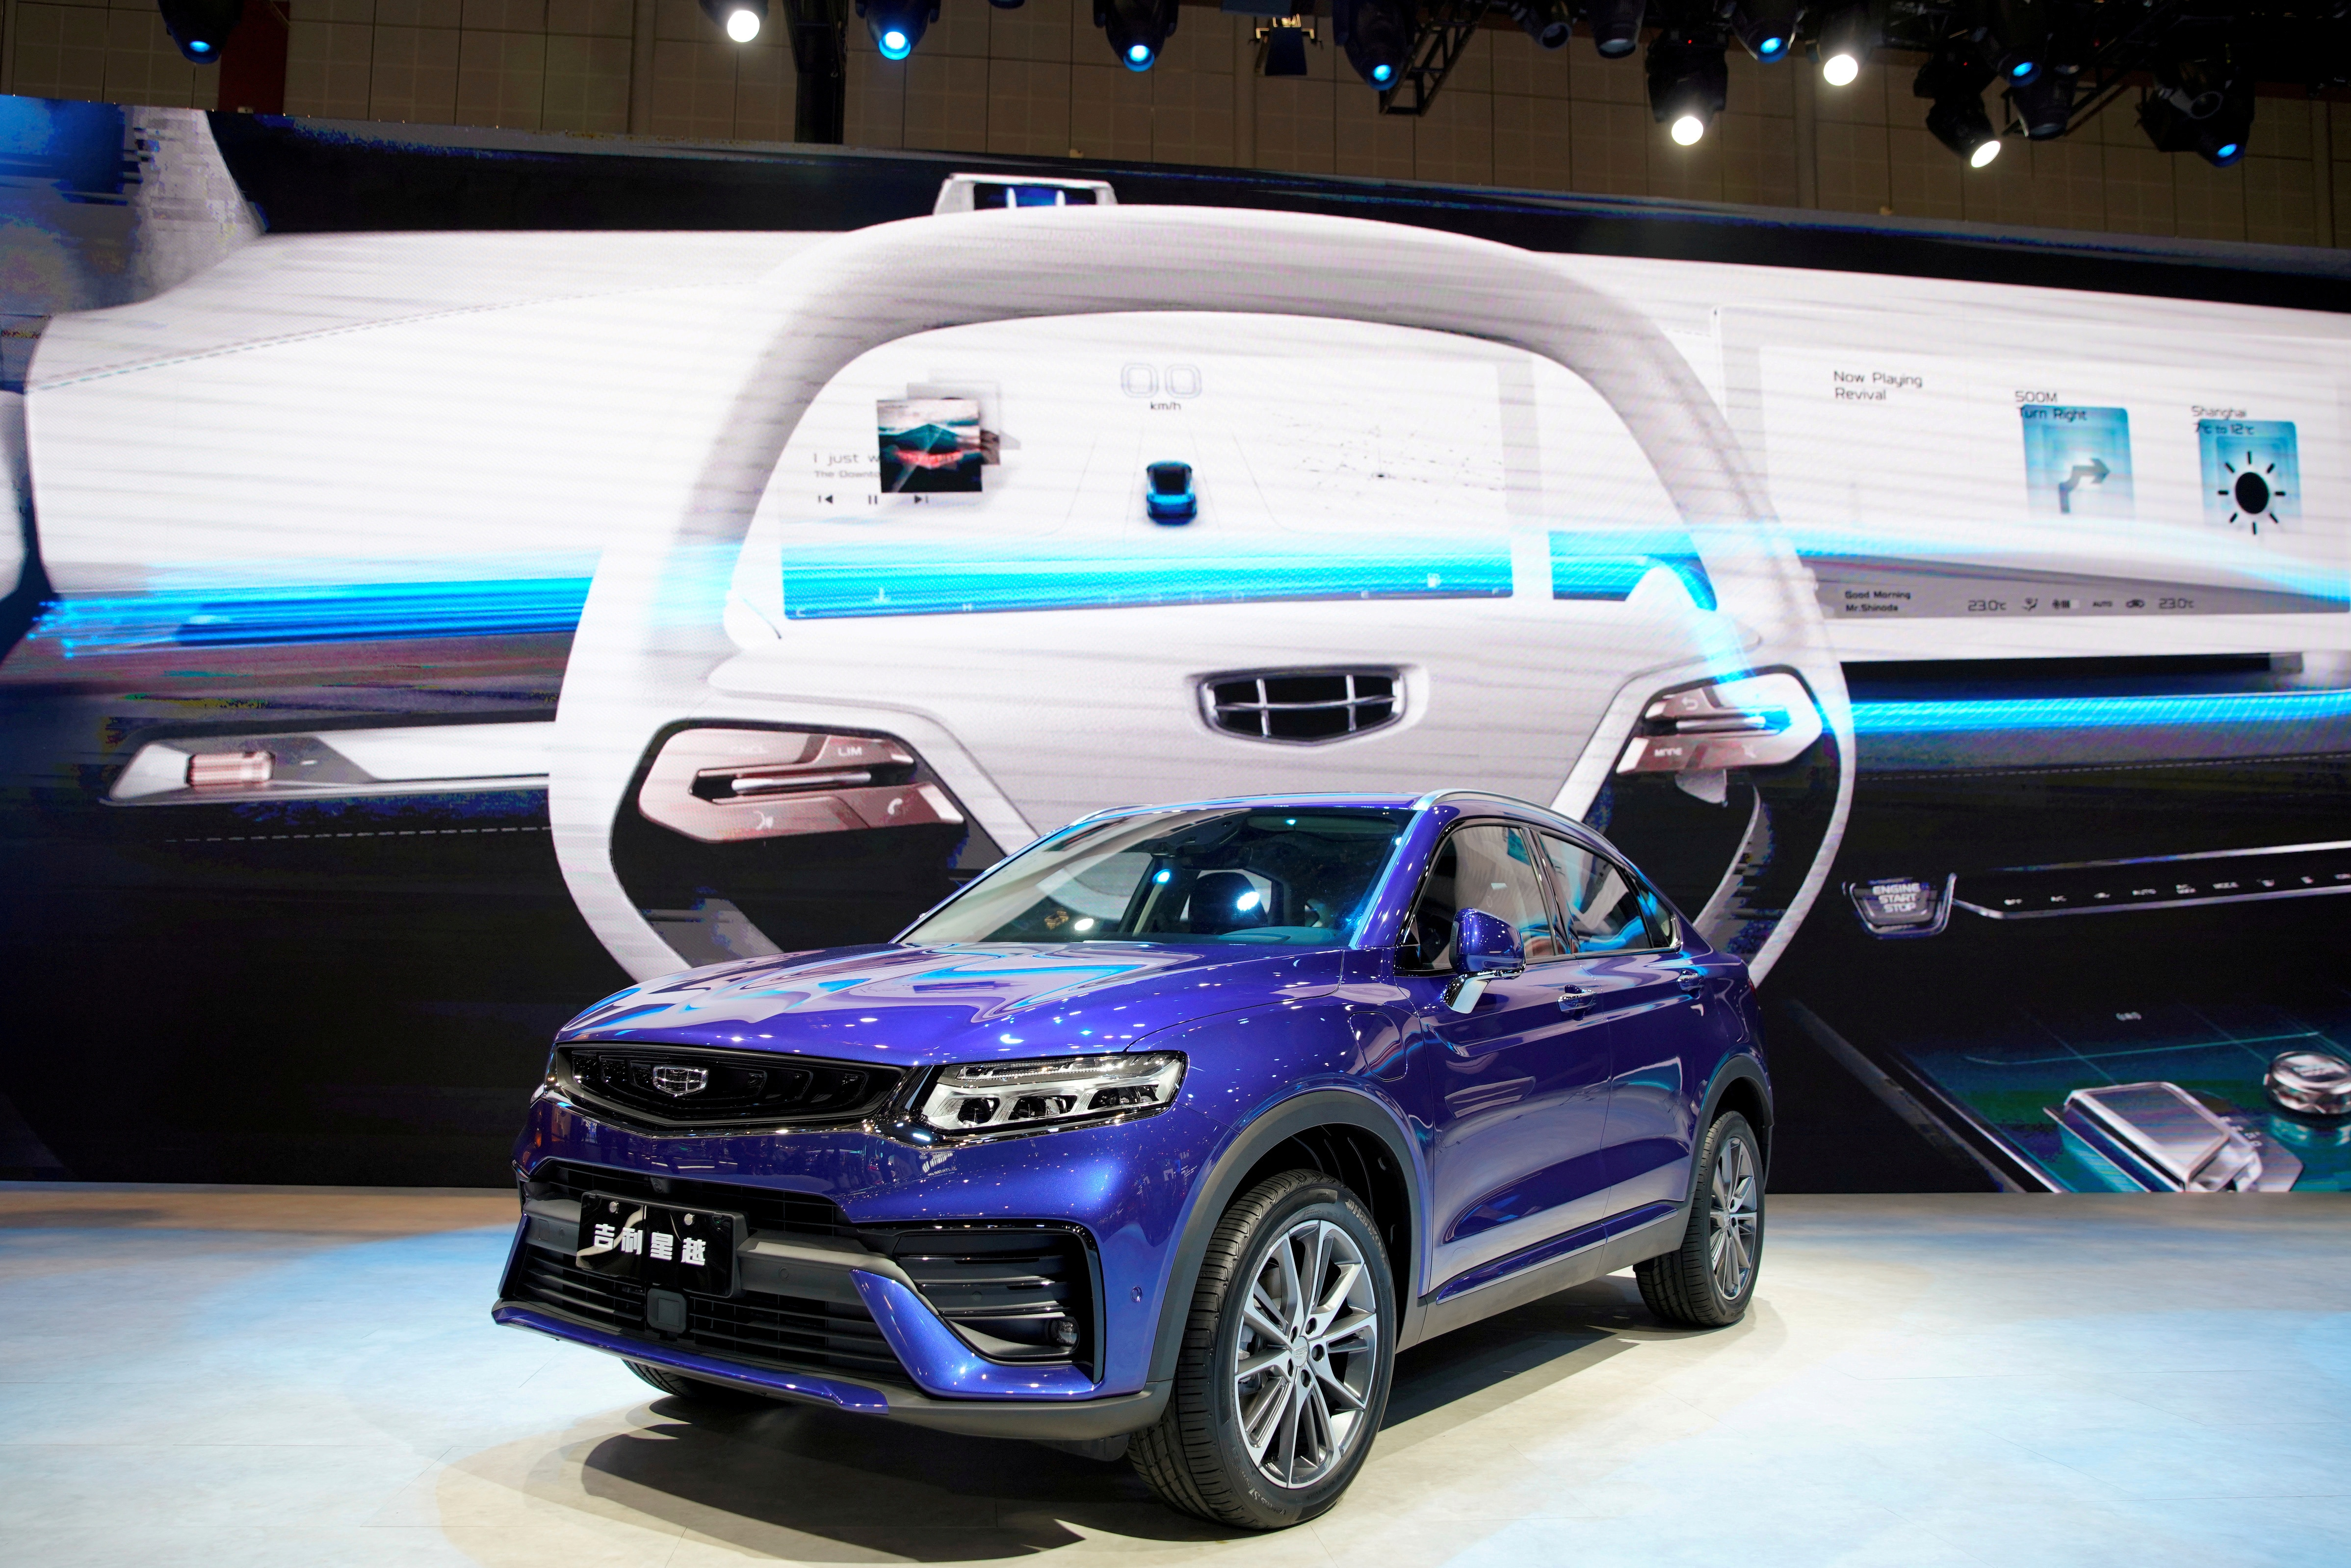 A Geely Xingyue Coupe SUV is seen displayed at the auto show. (REUTERS)